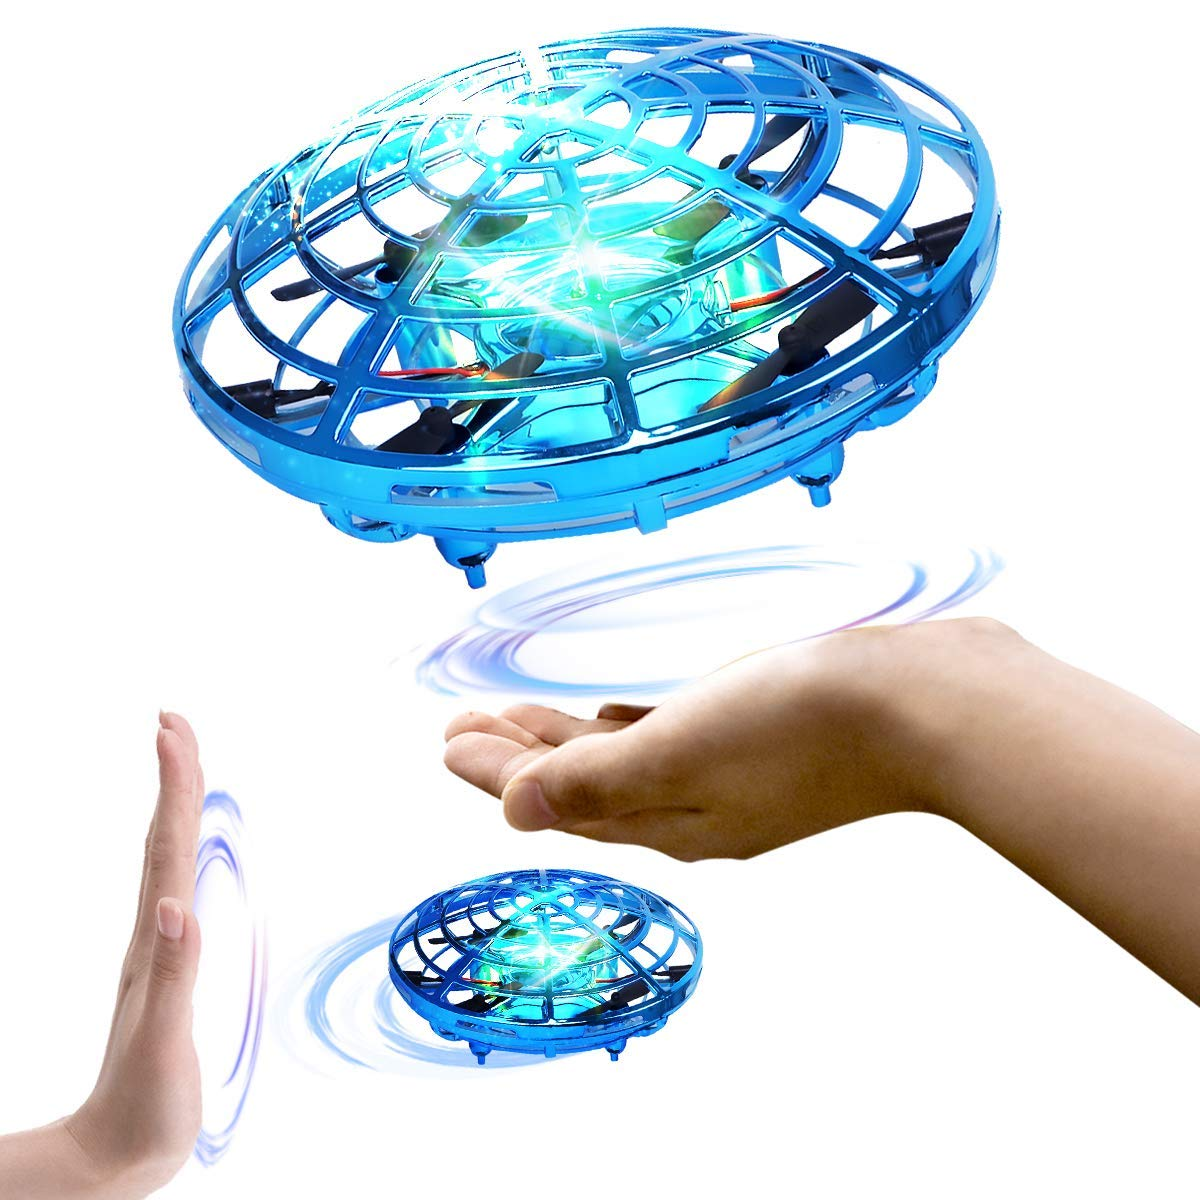 Hand Operated Drones for Kids or Adults, Light Up Joy Flying Ball Drone, Helicopter Mini Drone, Easy Indoor Small Flying Toys for Boys or Girls (Blue)